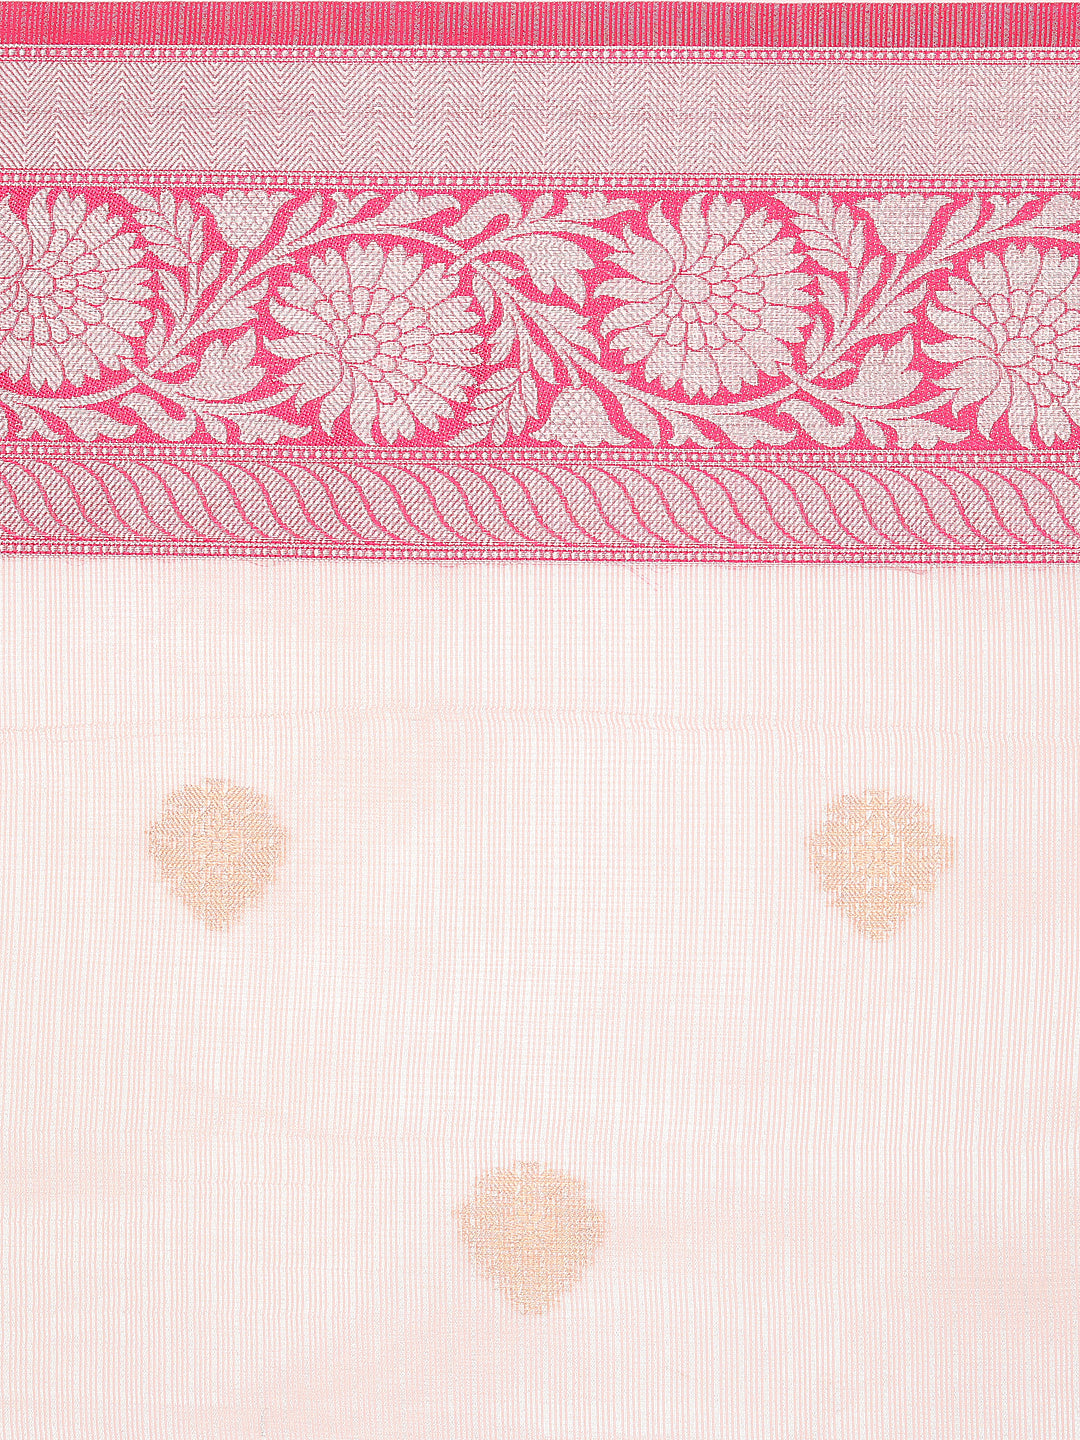 Light Pink kota zari saree with pink border and silver zari weaving